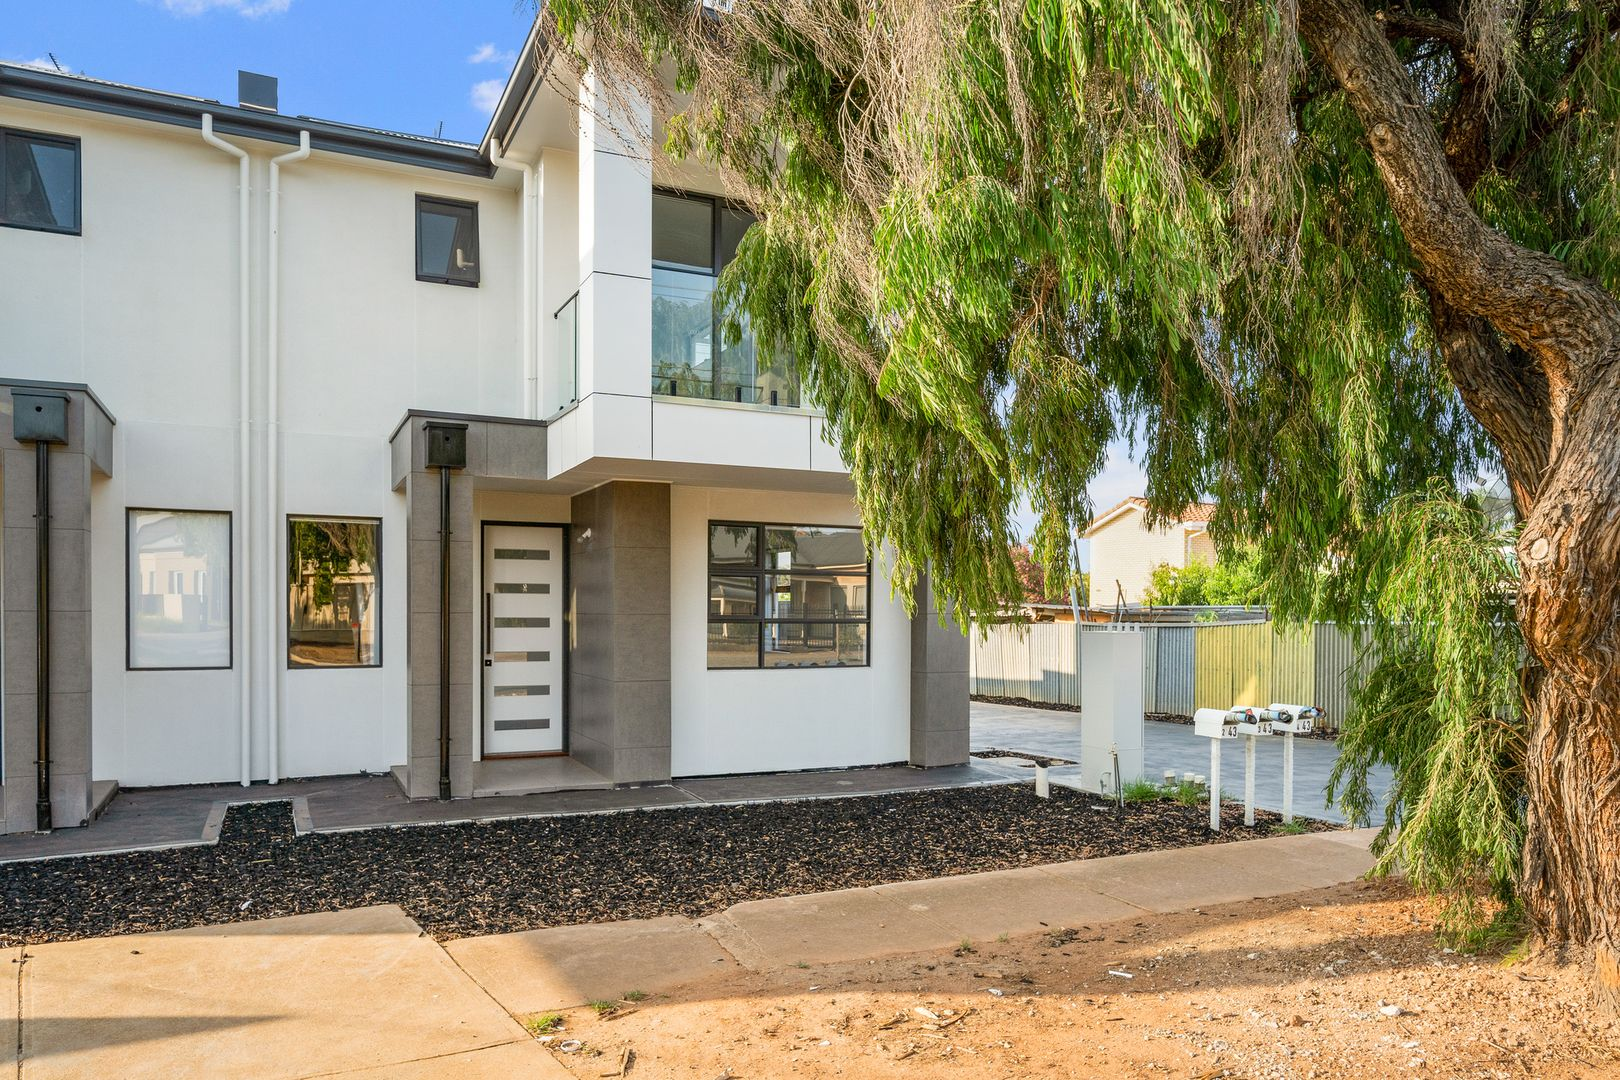 2/43 Clairville Road, Campbelltown SA 5074, Image 0